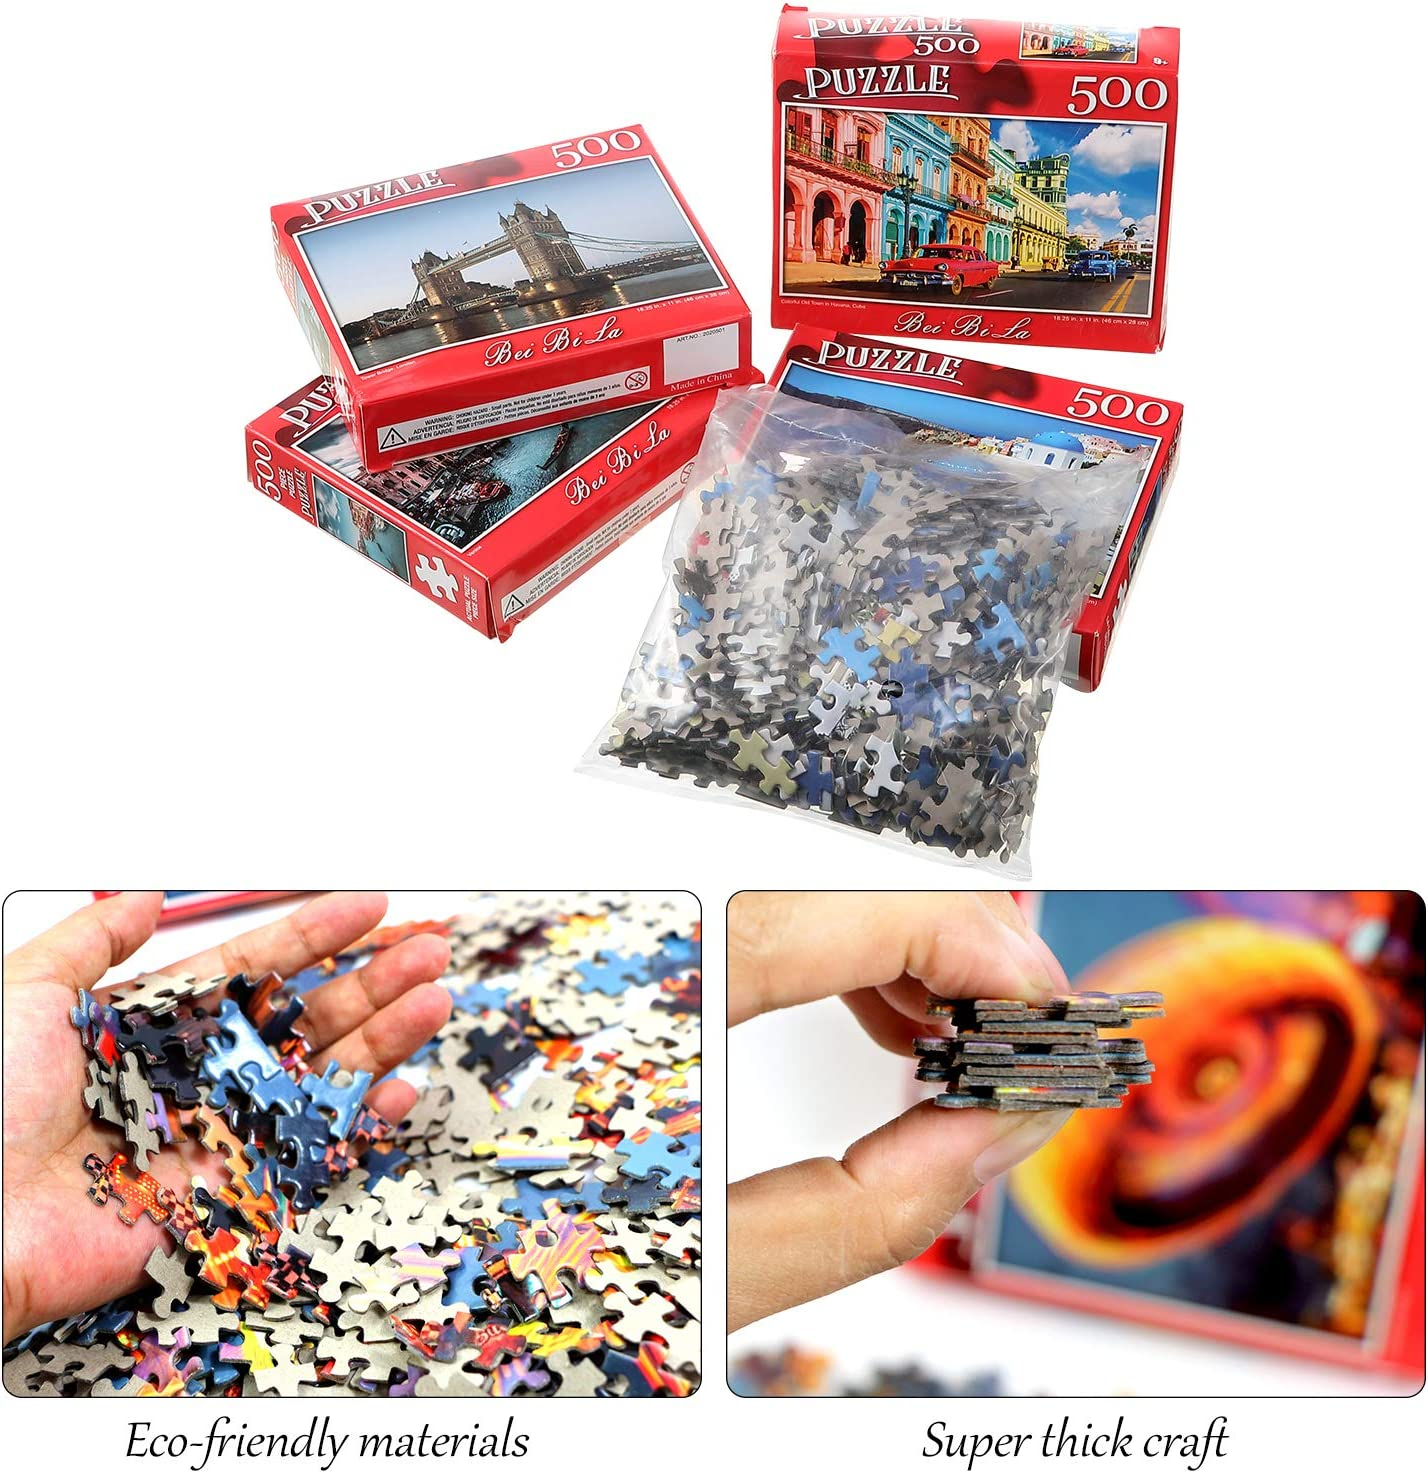 4 Sets 500 Pieces Jigsaw Puzzles Landscape Jigsaw Puzzles Castle Jigsaw Puzzles Educational Intellectual Decompressing Fun Family Jigsaw Puzzles Game for Adults Teens and Family